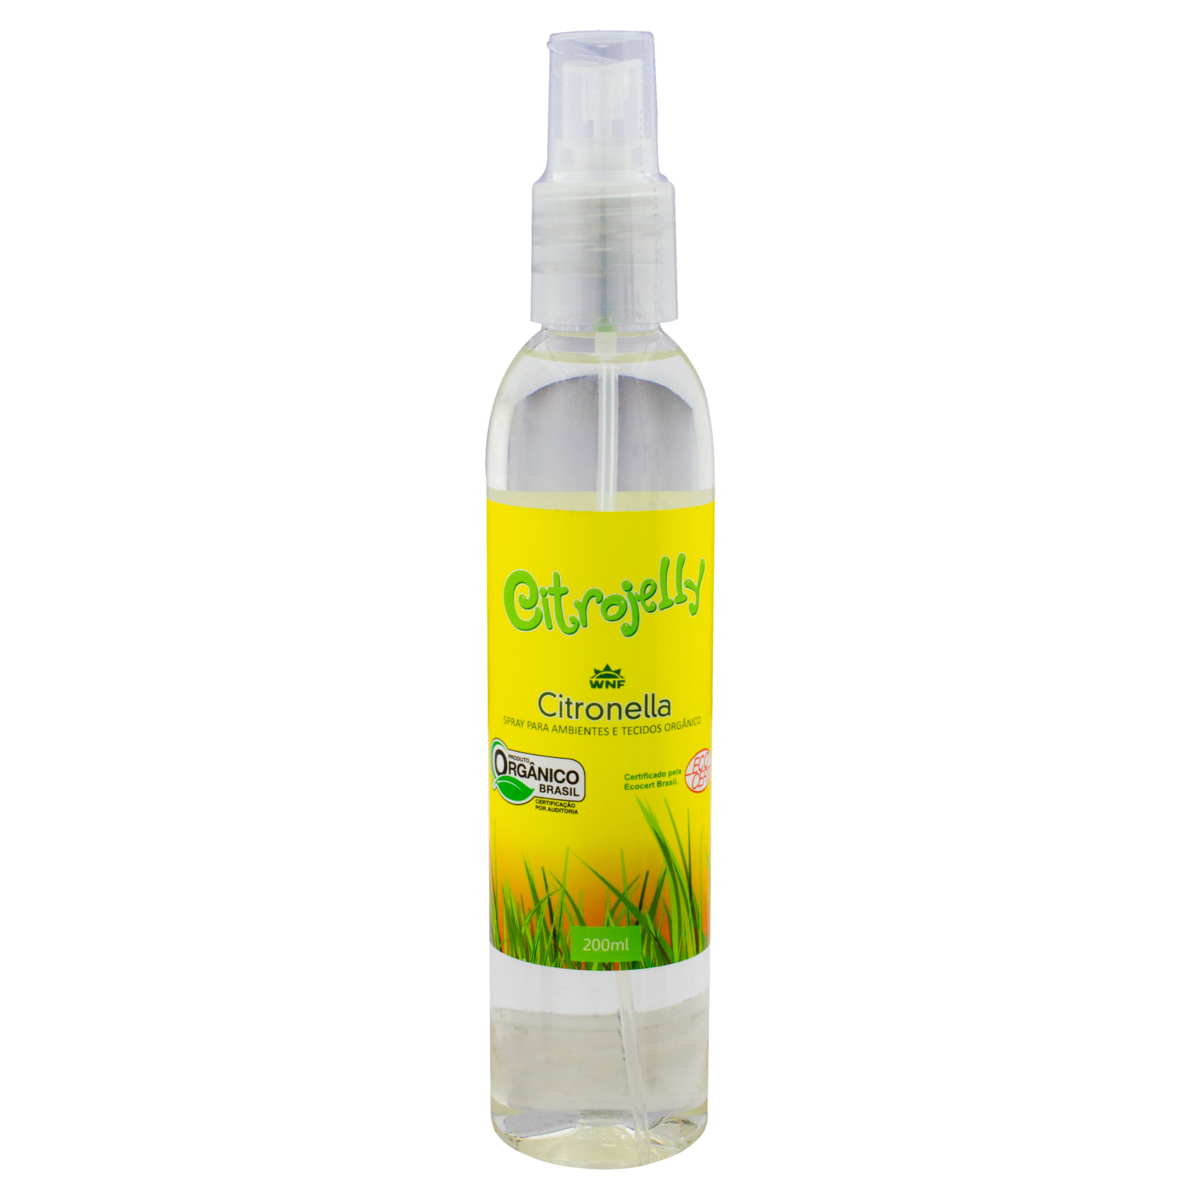 7895339012991 - CITROJELLY AROMAGIA SPRAY ORGANICO